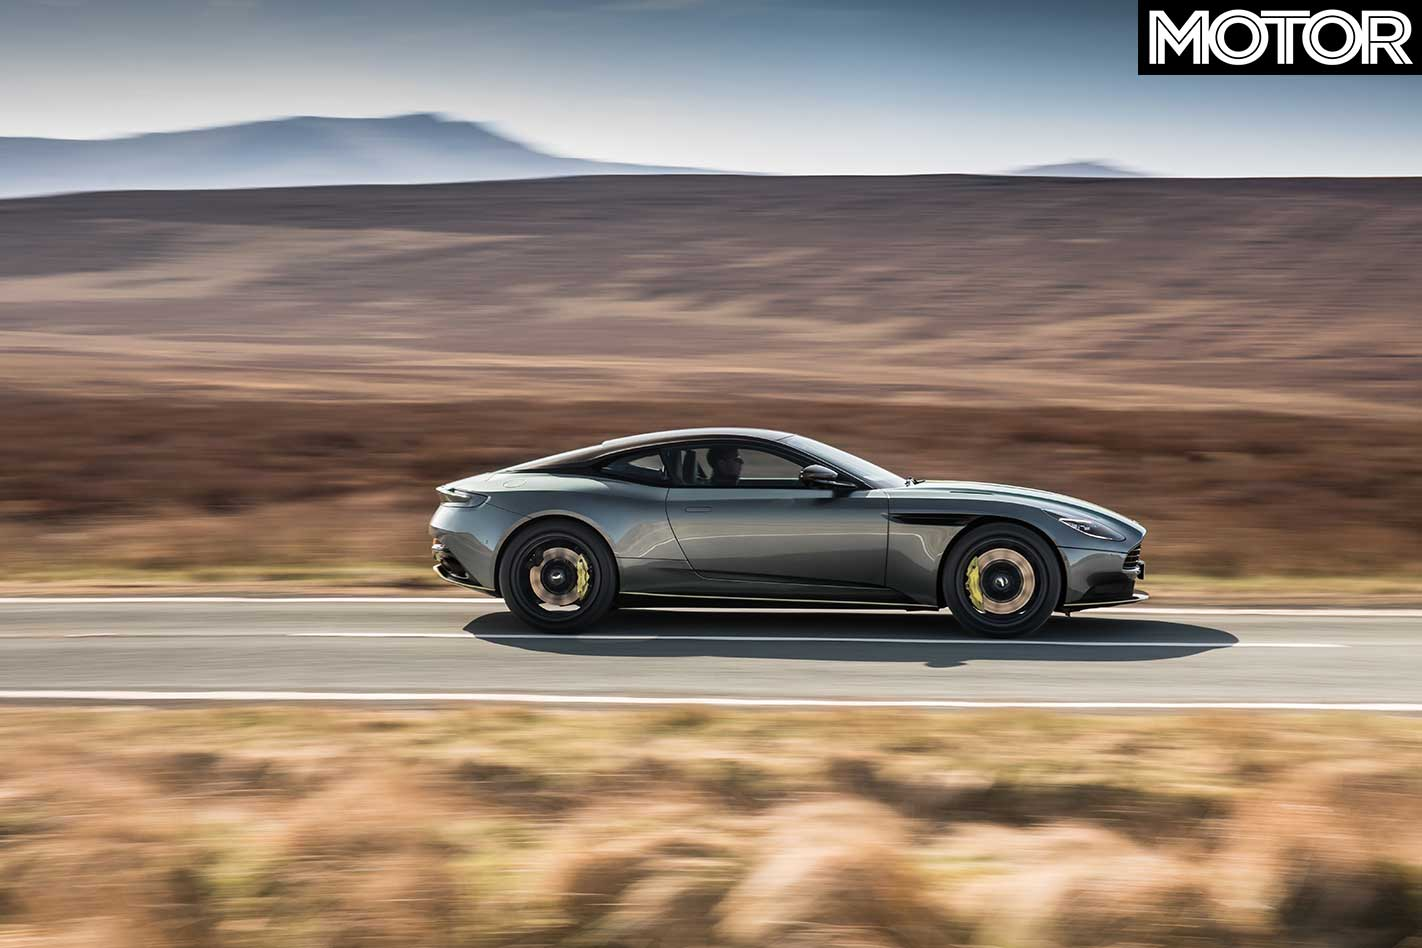 2018 Aston Martin Db11 Amr Performance Review